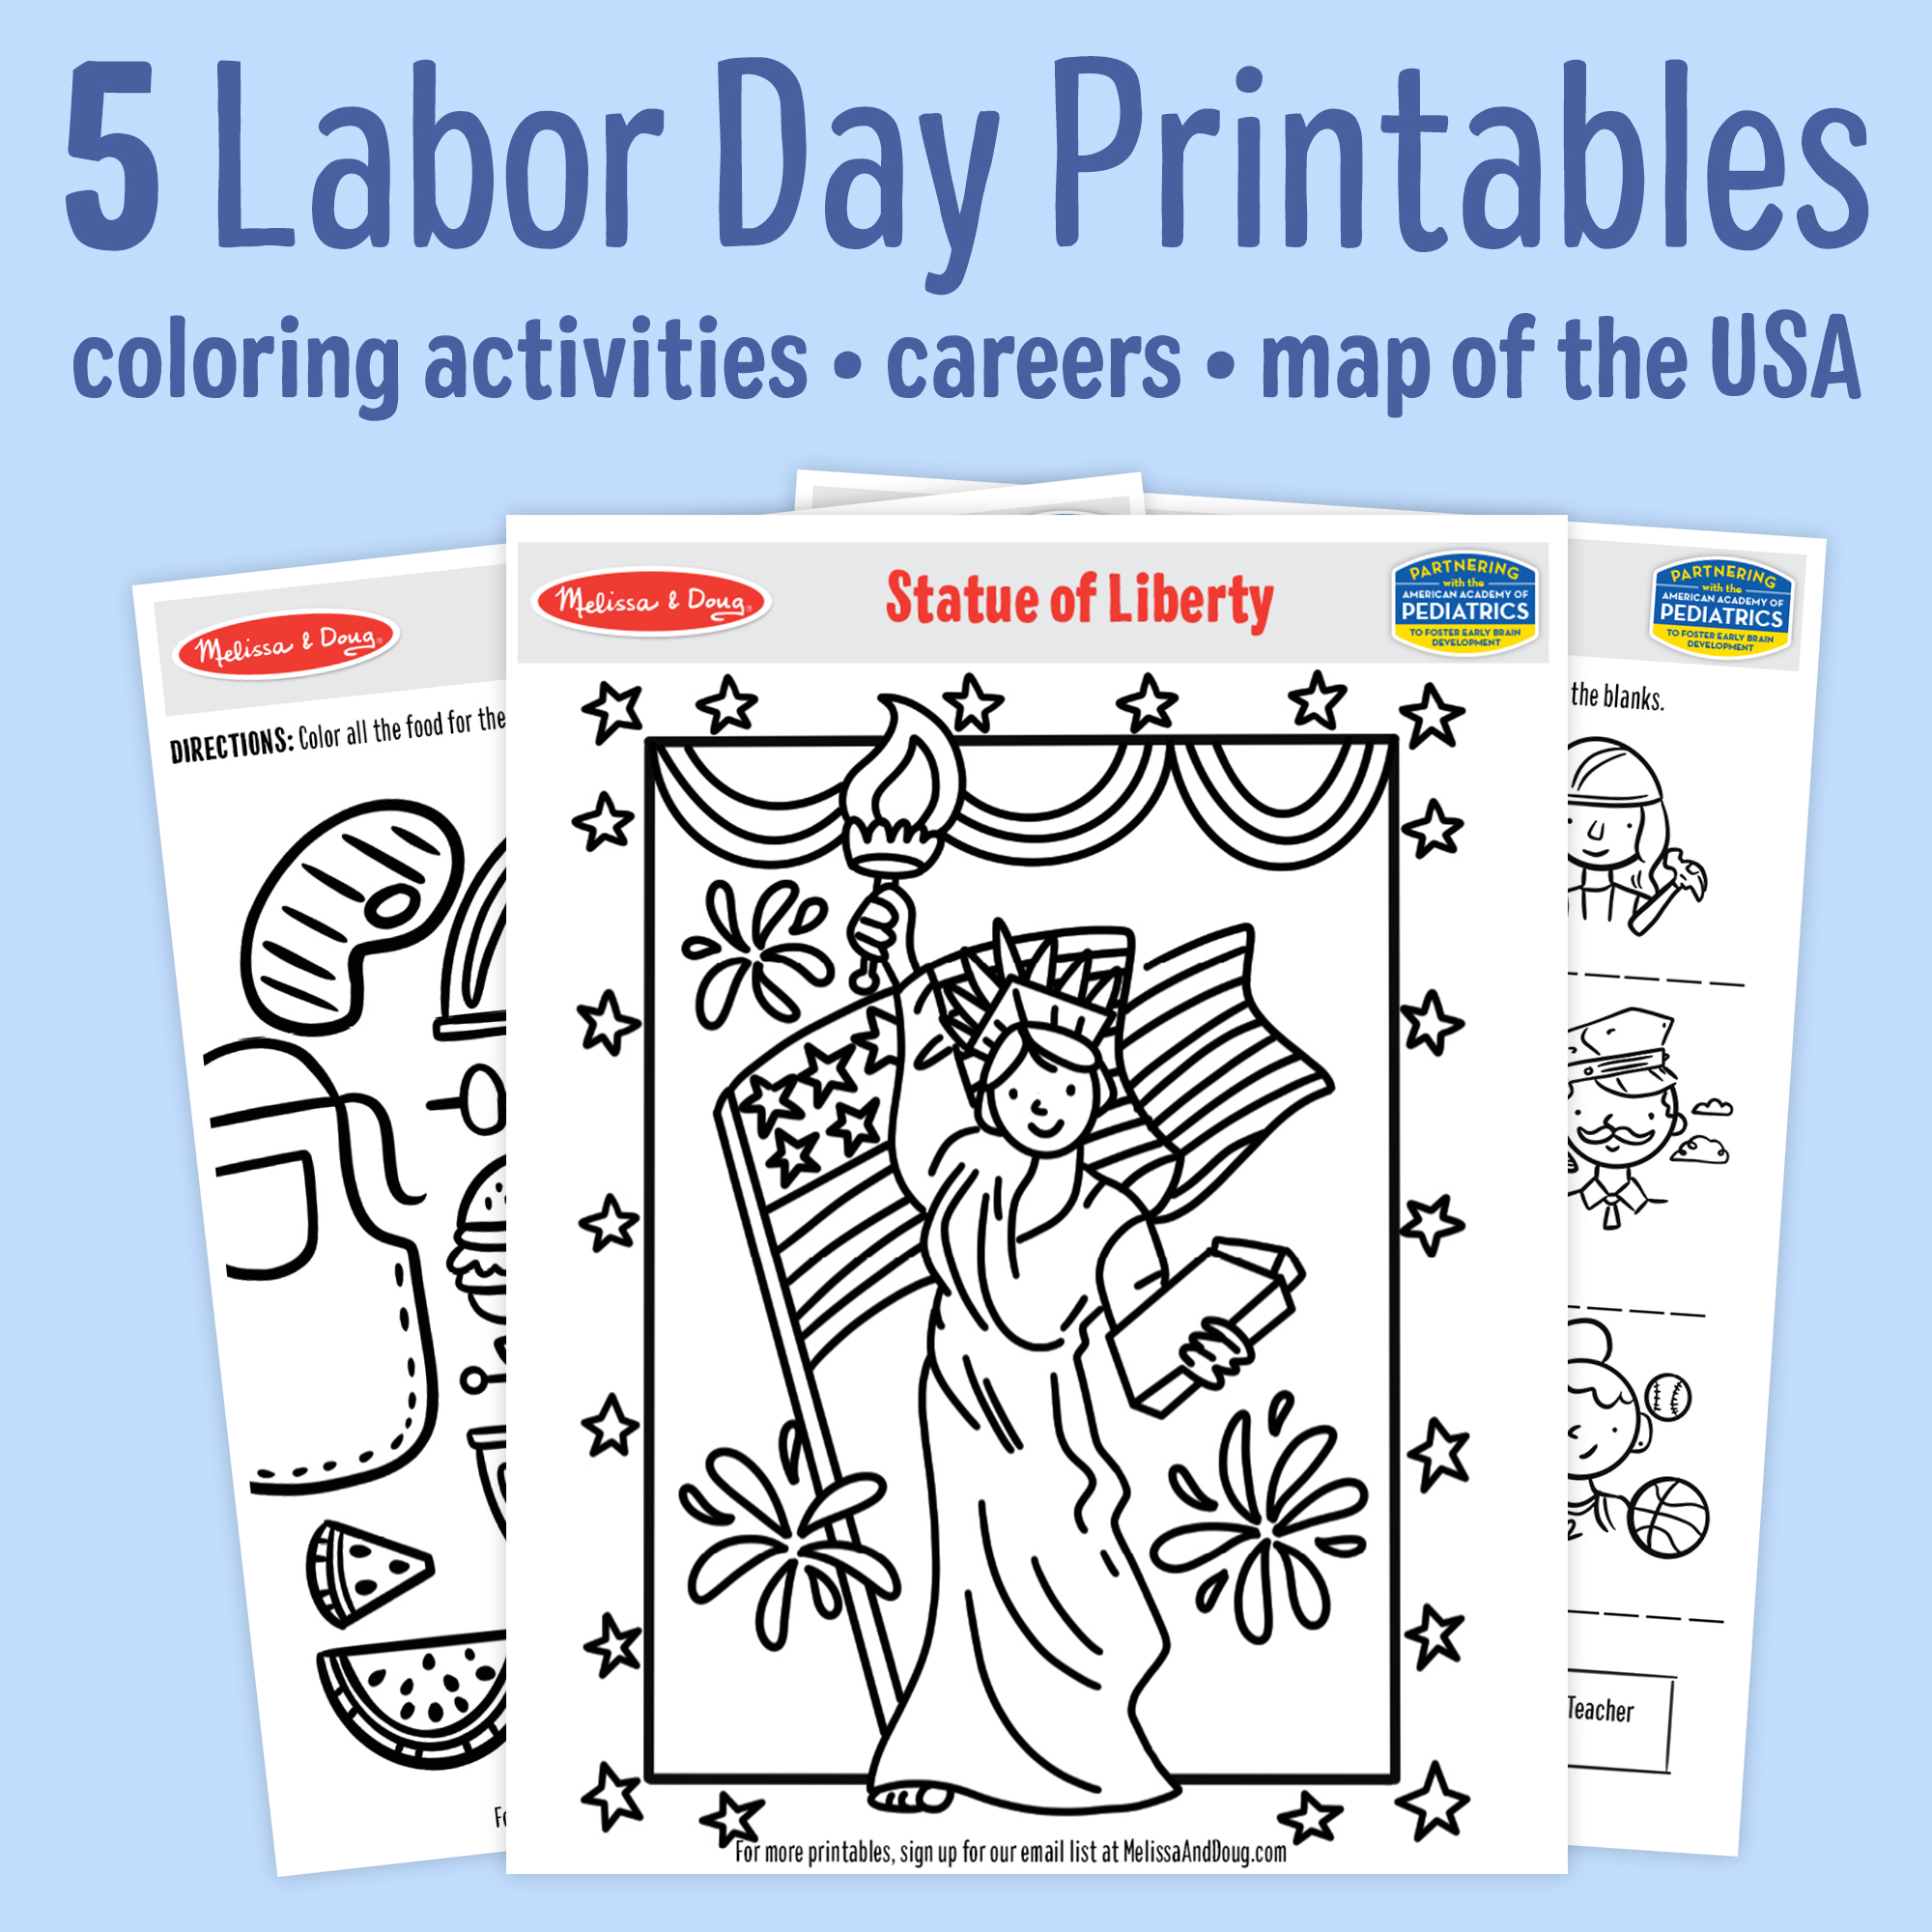 5 Free Labor Day Printables for Kids of All Ages